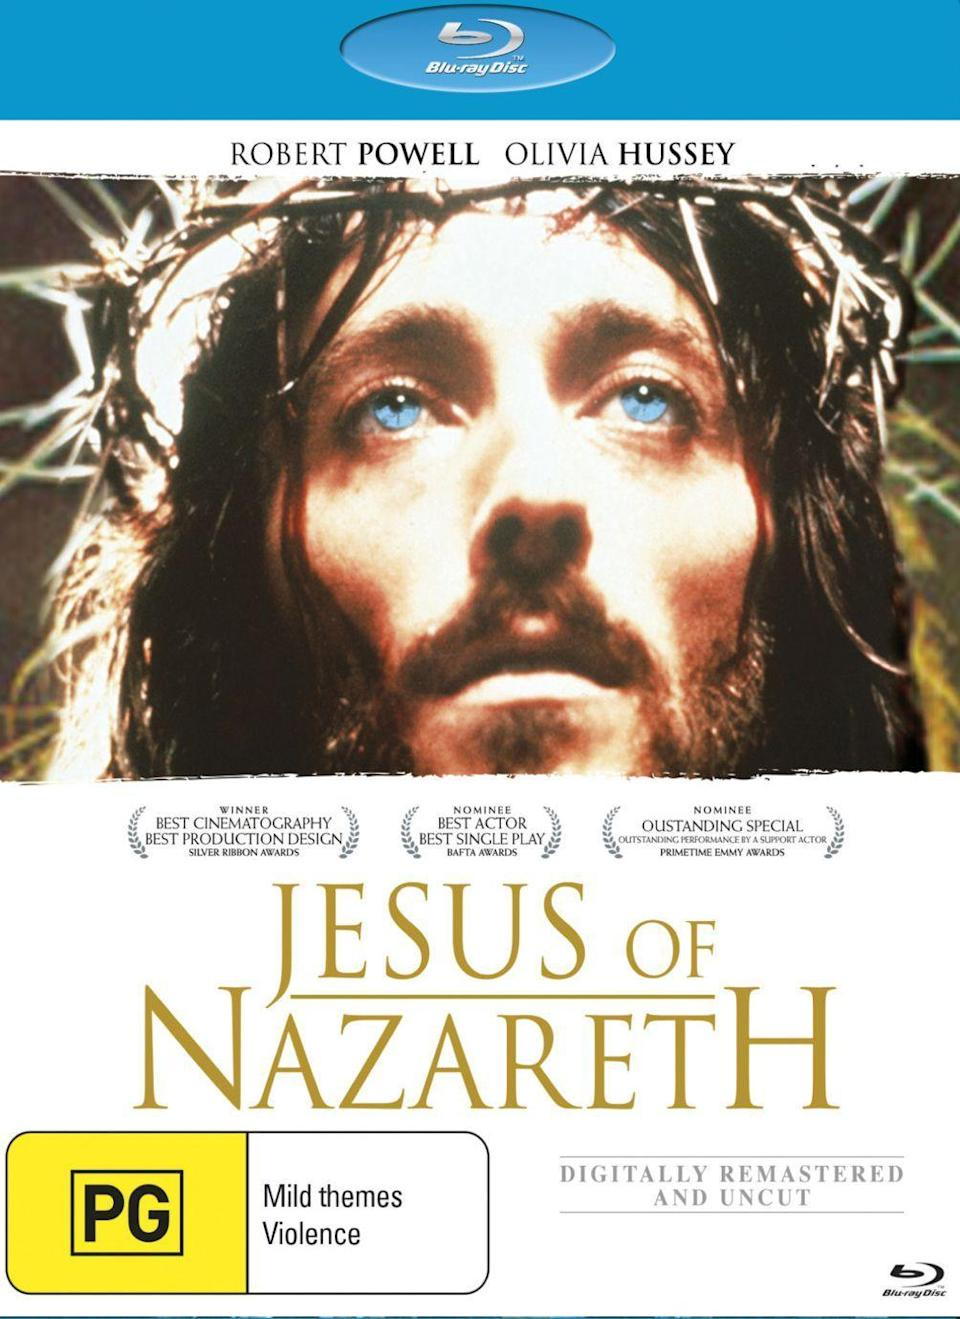 """<p>A more straightforward retelling of the life of Christ, this award-winning miniseries stars Robert Powell and Olivia Hussey, with a cameo by Laurence Olivier (Nicodemus). Note: It's rated PG for mild violence and may not be appropriate for young children.</p><p><a class=""""link rapid-noclick-resp"""" href=""""https://www.amazon.com/Jesus-Nazareth-Robert-Powell/dp/B075B2G56S/ref=sr_1_1?keywords=Jesus+of+Nazareth&qid=1551992182&s=instant-video&sr=1-1&tag=syn-yahoo-20&ascsubtag=%5Bartid%7C10070.g.16643651%5Bsrc%7Cyahoo-us"""" rel=""""nofollow noopener"""" target=""""_blank"""" data-ylk=""""slk:STREAM NOW"""">STREAM NOW</a></p><p>__________________________________________________________</p><p>Want to make your holidays shine? You're in luck! <a href=""""https://subscribe.hearstmags.com/subscribe/womansday/253396?source=wdy_edit_article"""" rel=""""nofollow noopener"""" target=""""_blank"""" data-ylk=""""slk:Subscribe to Woman's Day"""" class=""""link rapid-noclick-resp"""">Subscribe to Woman's Day</a> today and get <strong>73% off your first 12 issues</strong>. And while you're at it, <a href=""""https://subscribe.hearstmags.com/circulation/shared/email/newsletters/signup/wdy-su01.html"""" rel=""""nofollow noopener"""" target=""""_blank"""" data-ylk=""""slk:sign up for our FREE newsletter"""" class=""""link rapid-noclick-resp"""">sign up for our FREE newsletter</a> for even more of the Woman's Day content you want.</p>"""